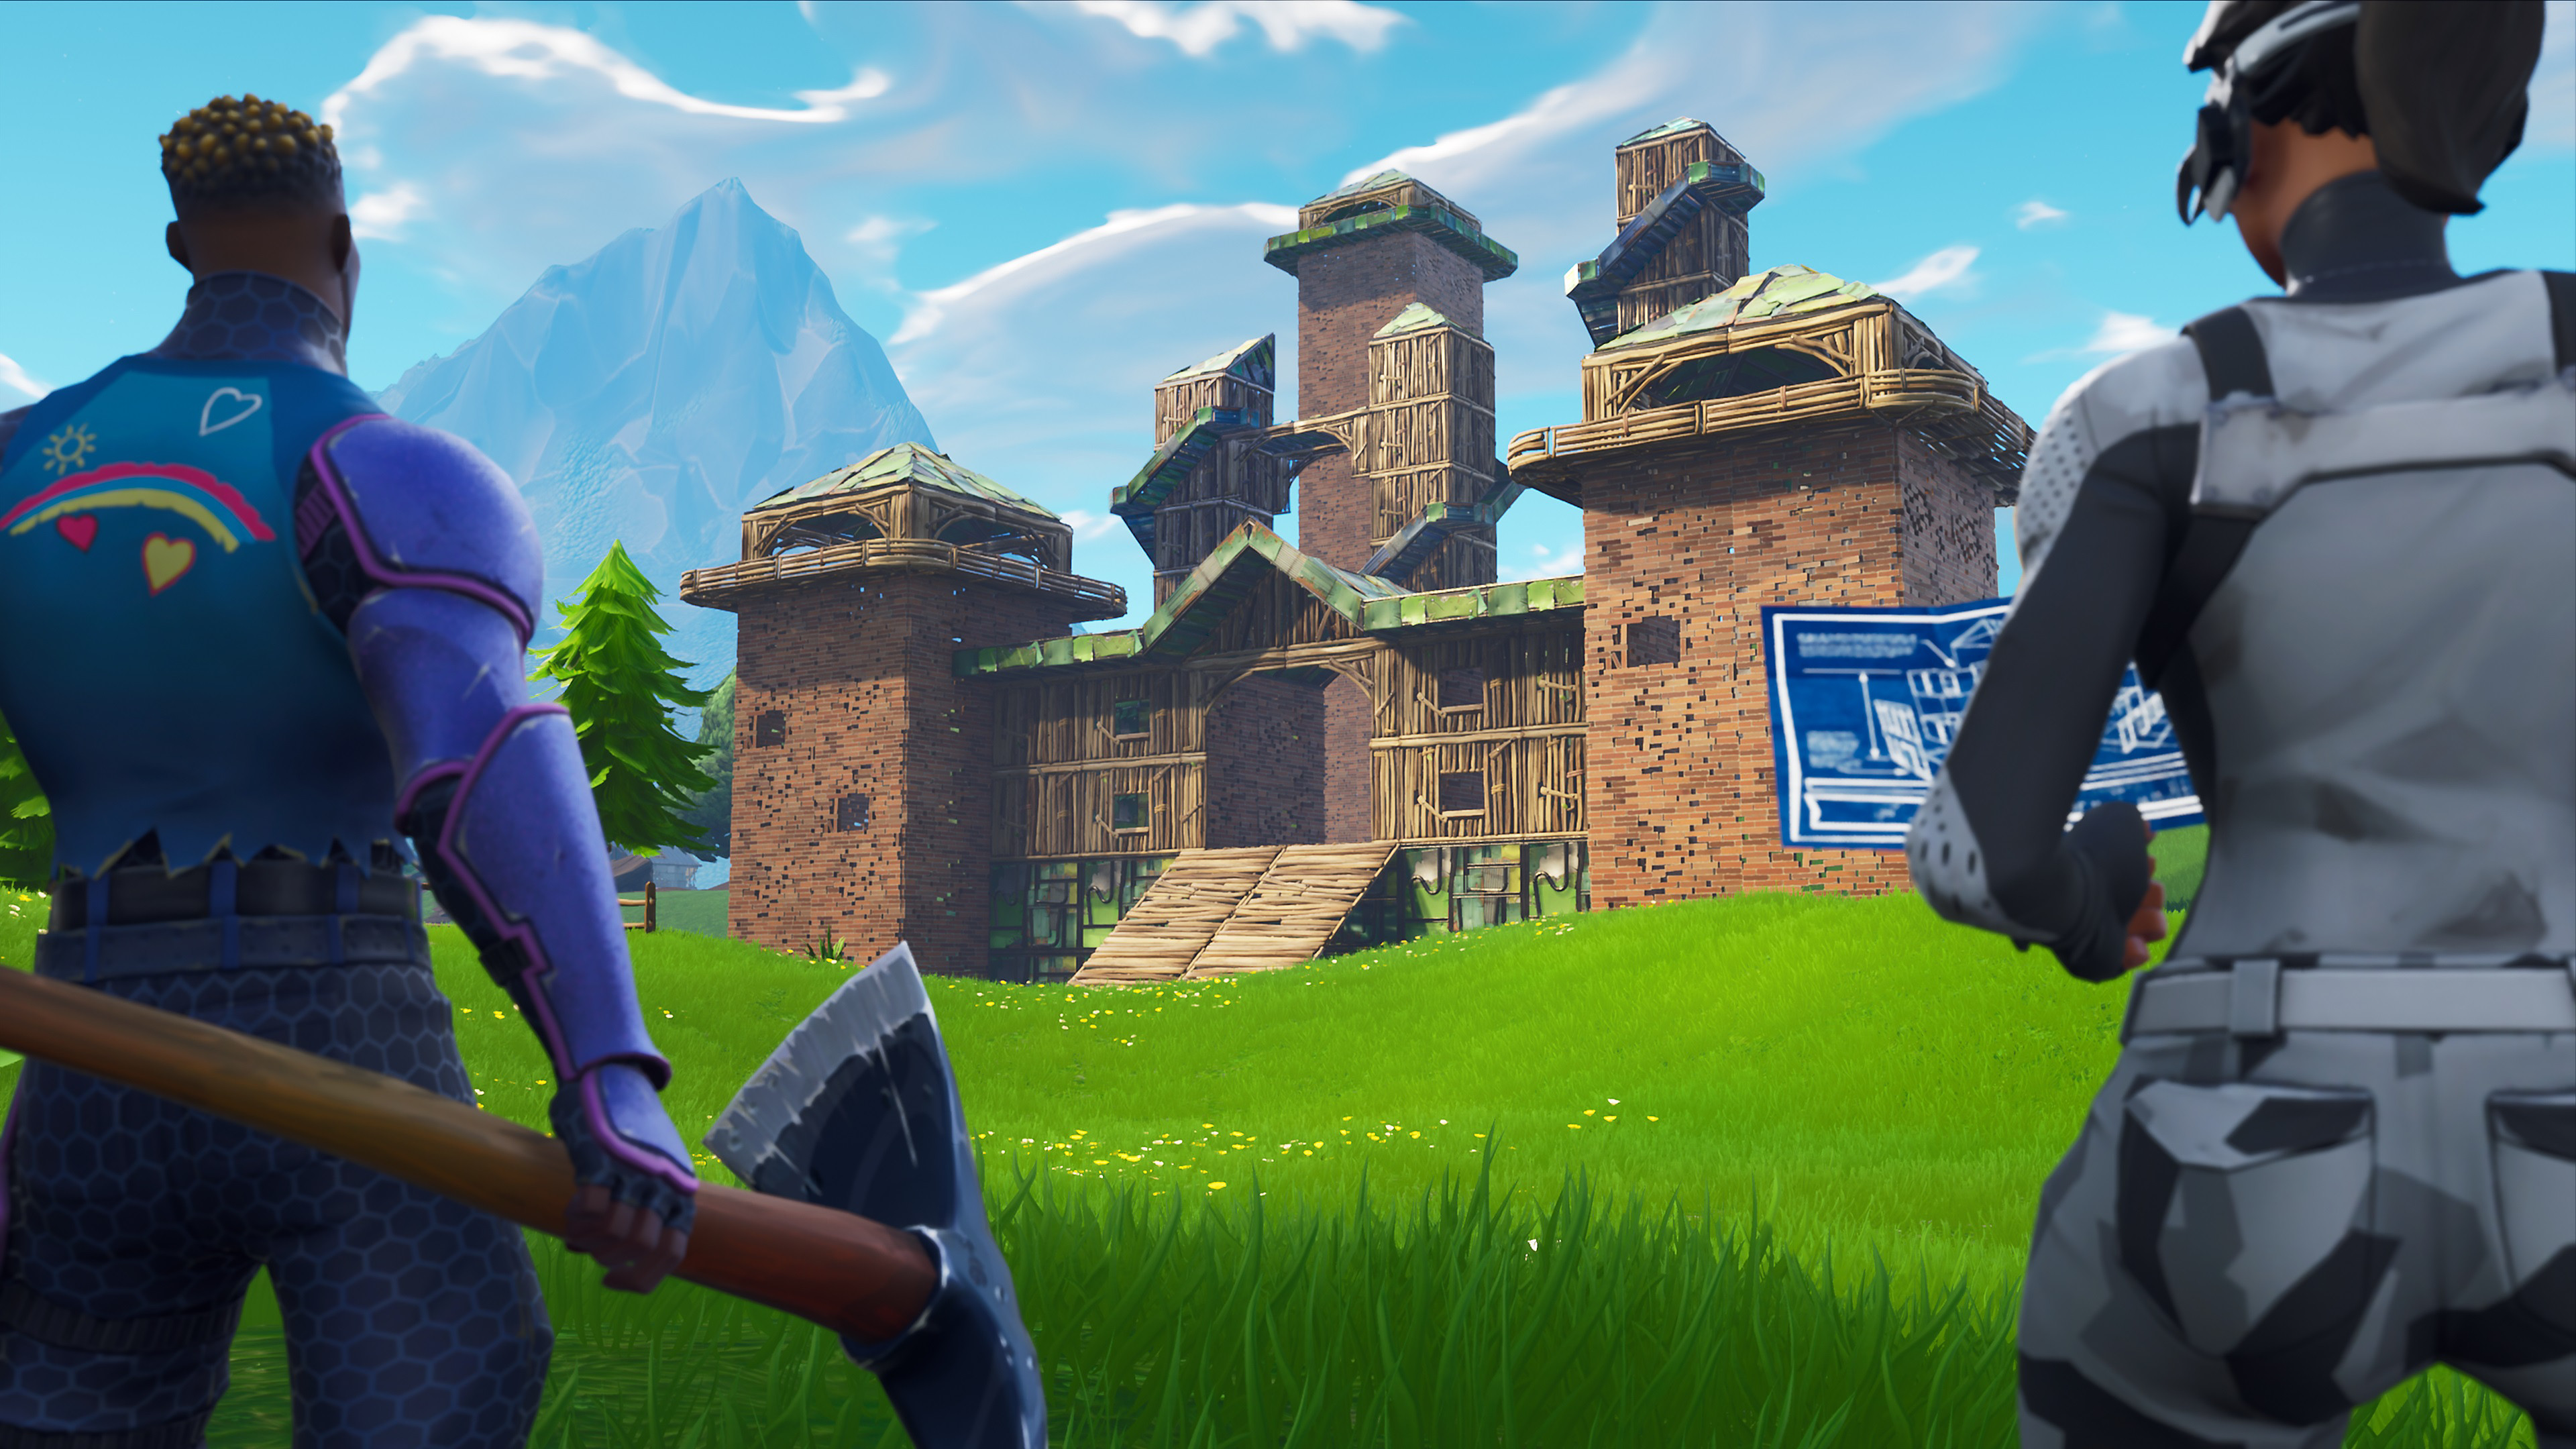 can you still download fortnite for free on ps4